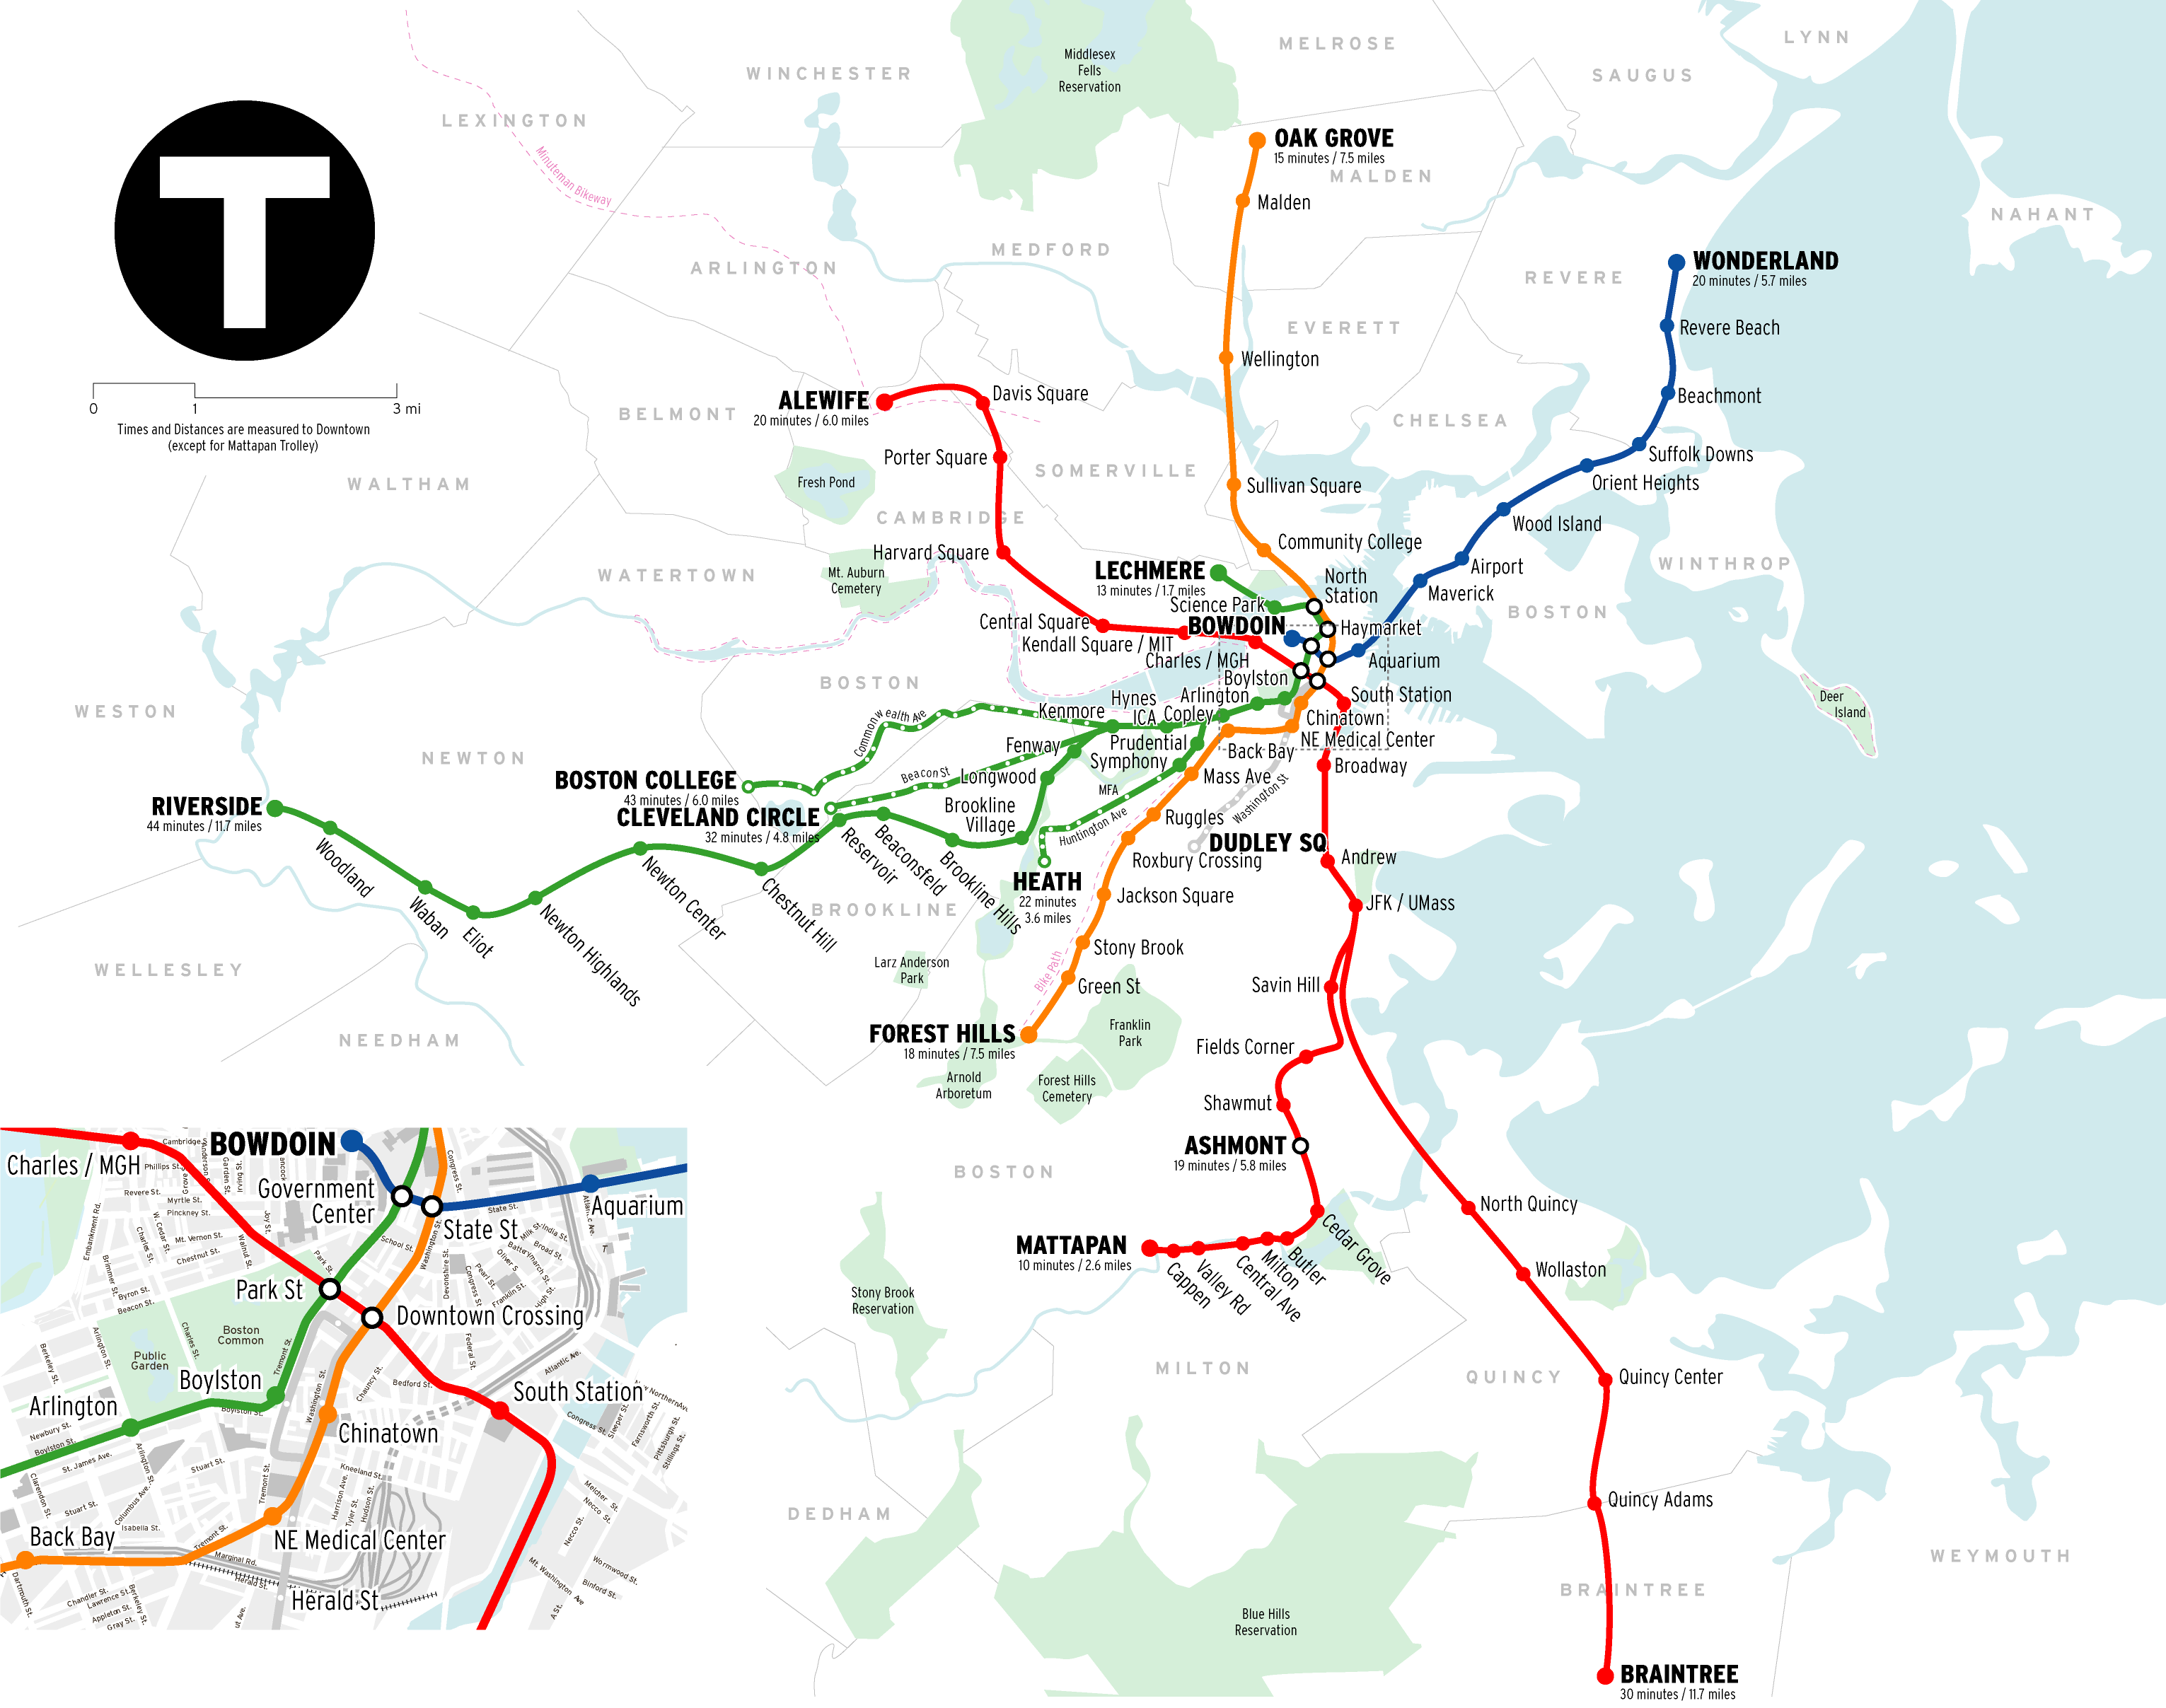 File:MBTA Boston subway map.png   Wikimedia Commons